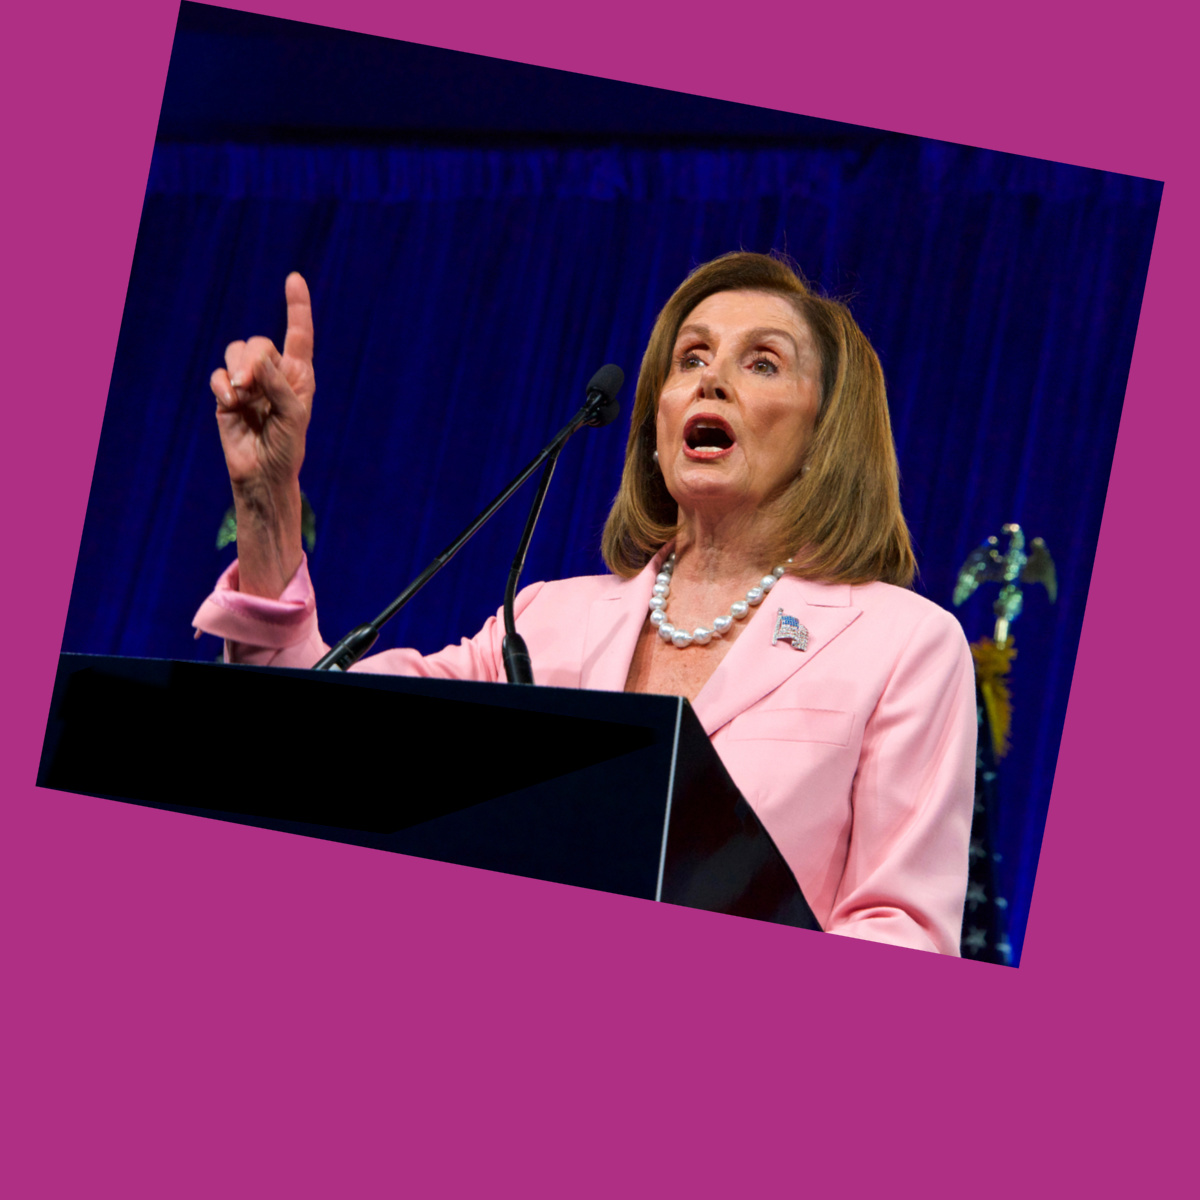 Nancy Pelosi's rise to power has nothing to do with feminism